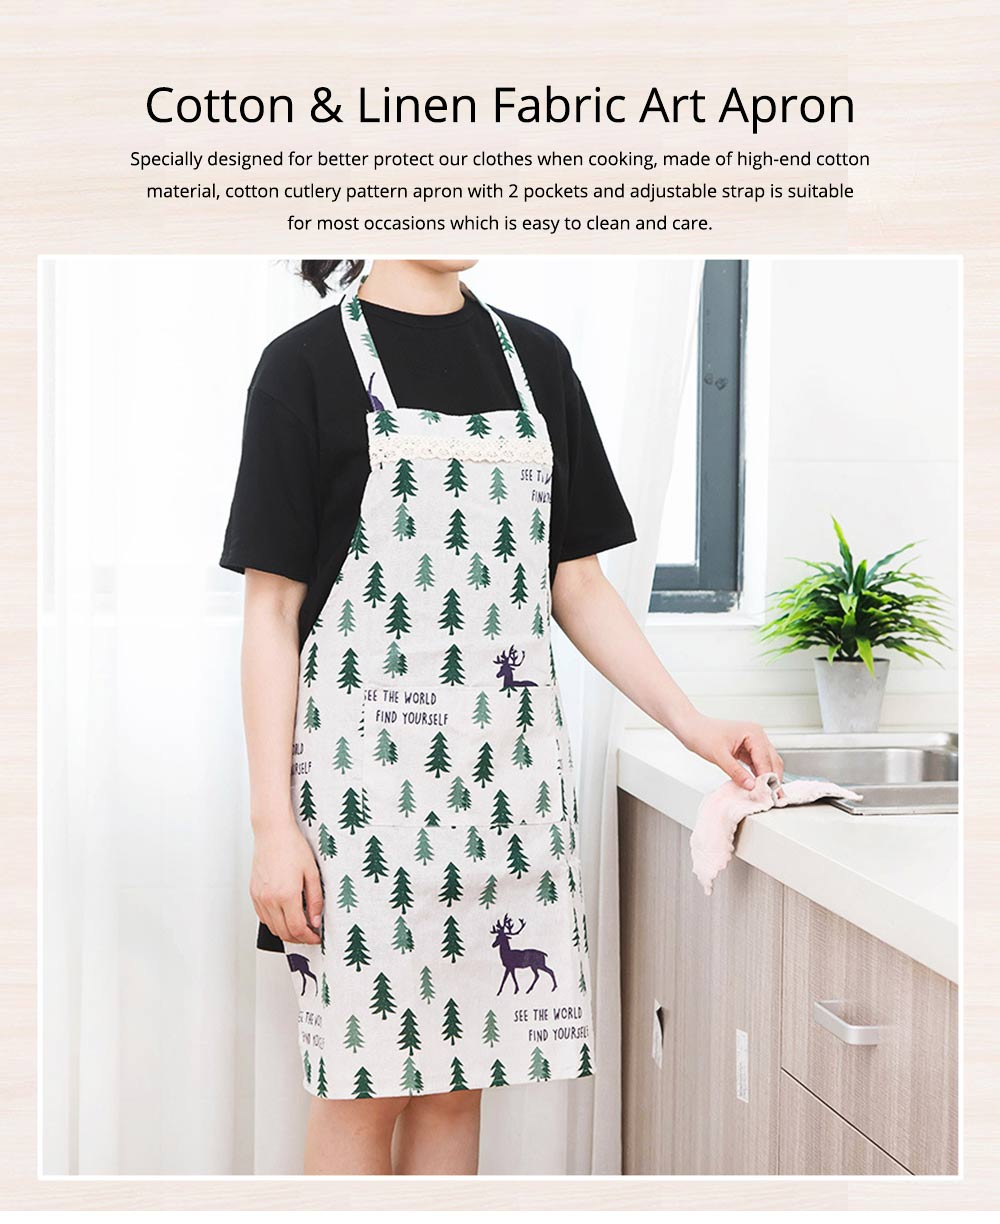 Cotton & Linen Fabric Art Apron with Fresh Pattern & Waterproof & Oil-proof for BBQ, Baking, Cooking for Men & Women 0